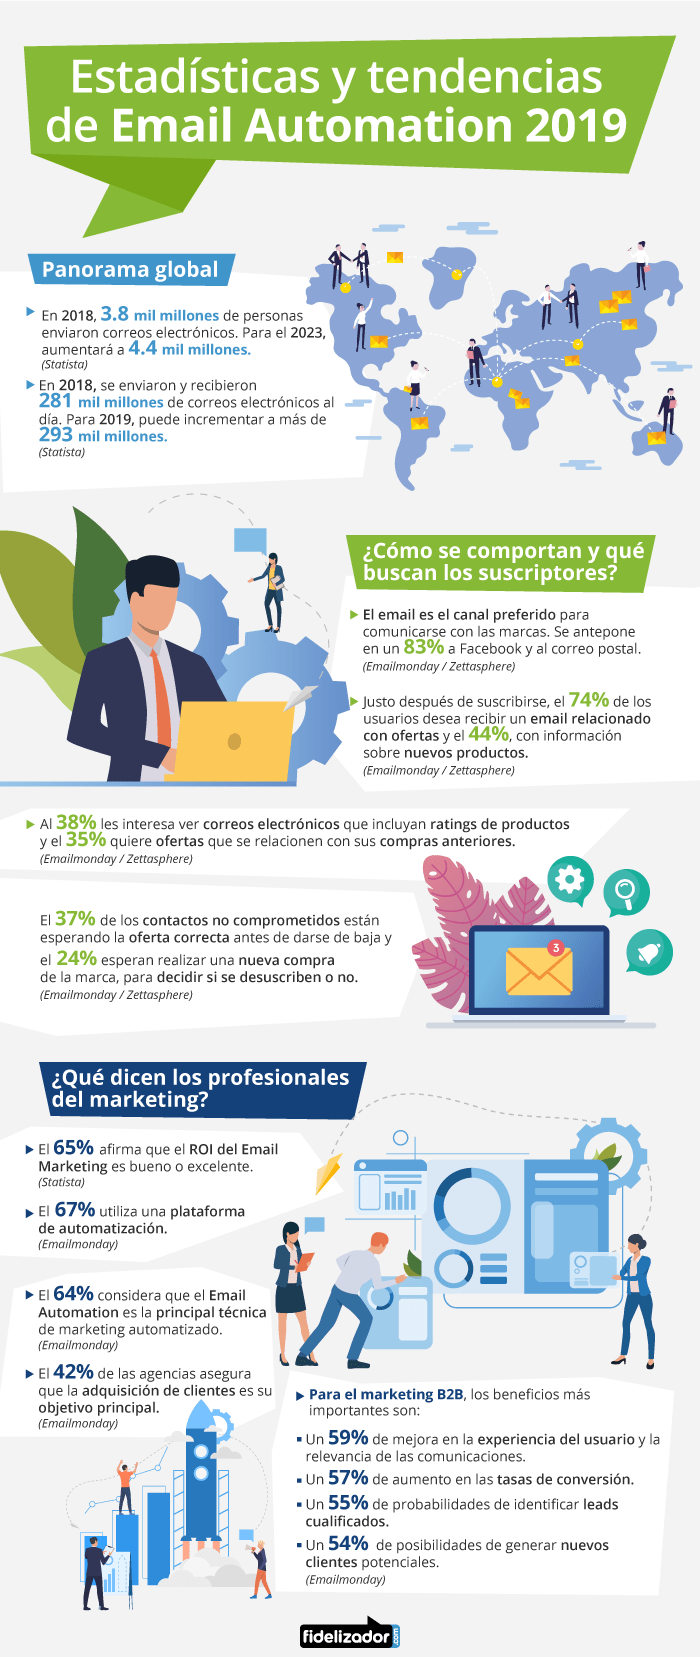 Estadísticas y tendencias de email automation #infografia #infographic #marketing